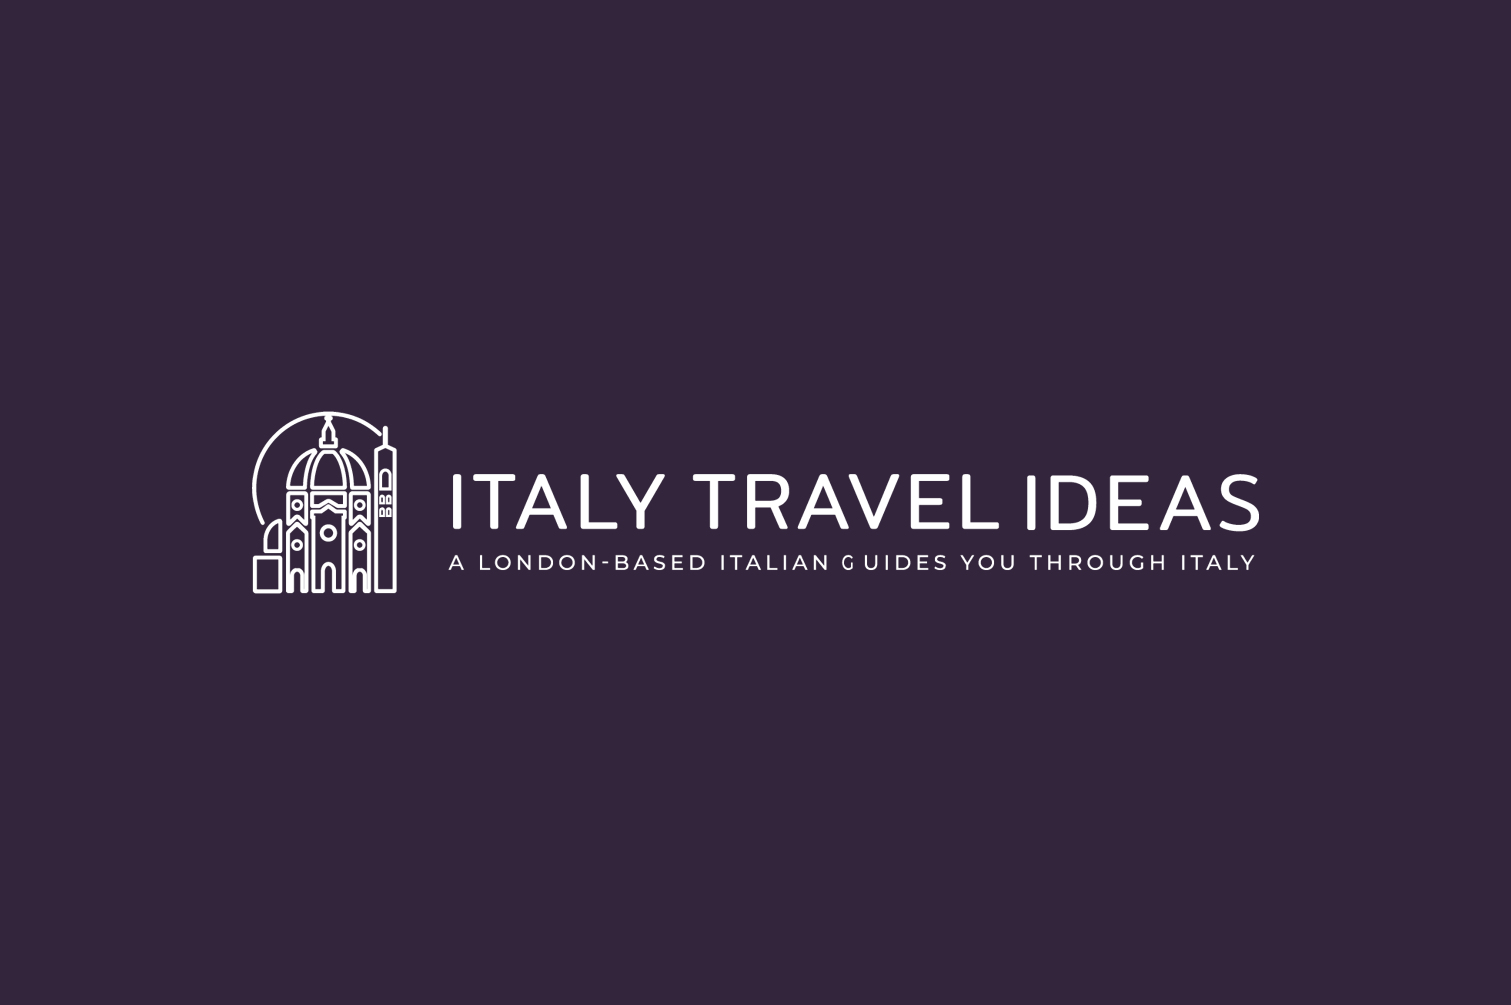 Italy Travel Ideas Logo